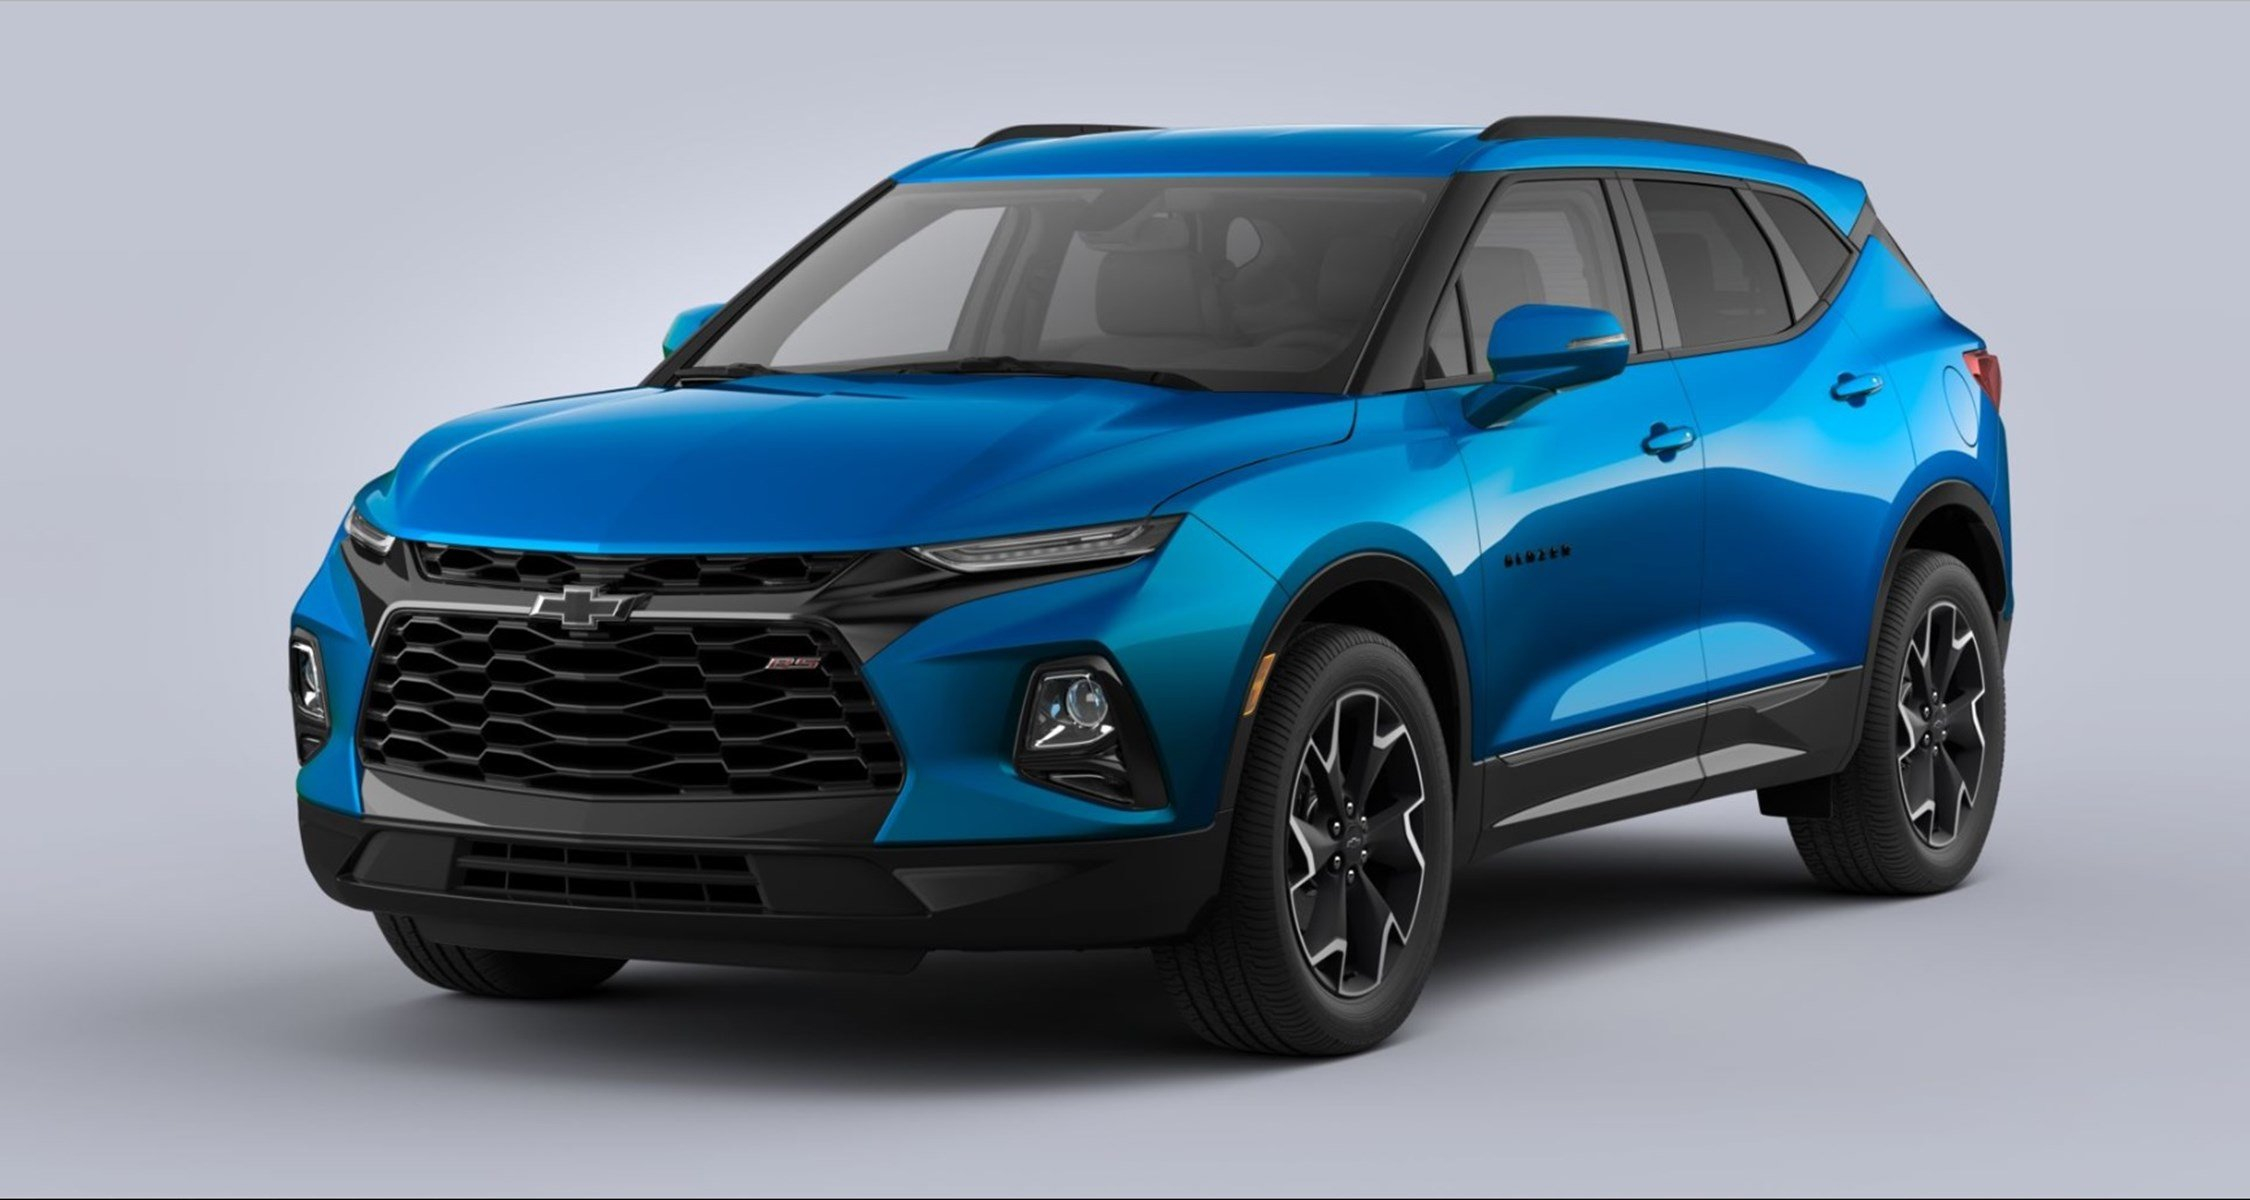 New 2020 Chevrolet Blazer Rs Awd Sport Utility 2022 Chevrolet Blazer Pictures, Parts, Safety Rating